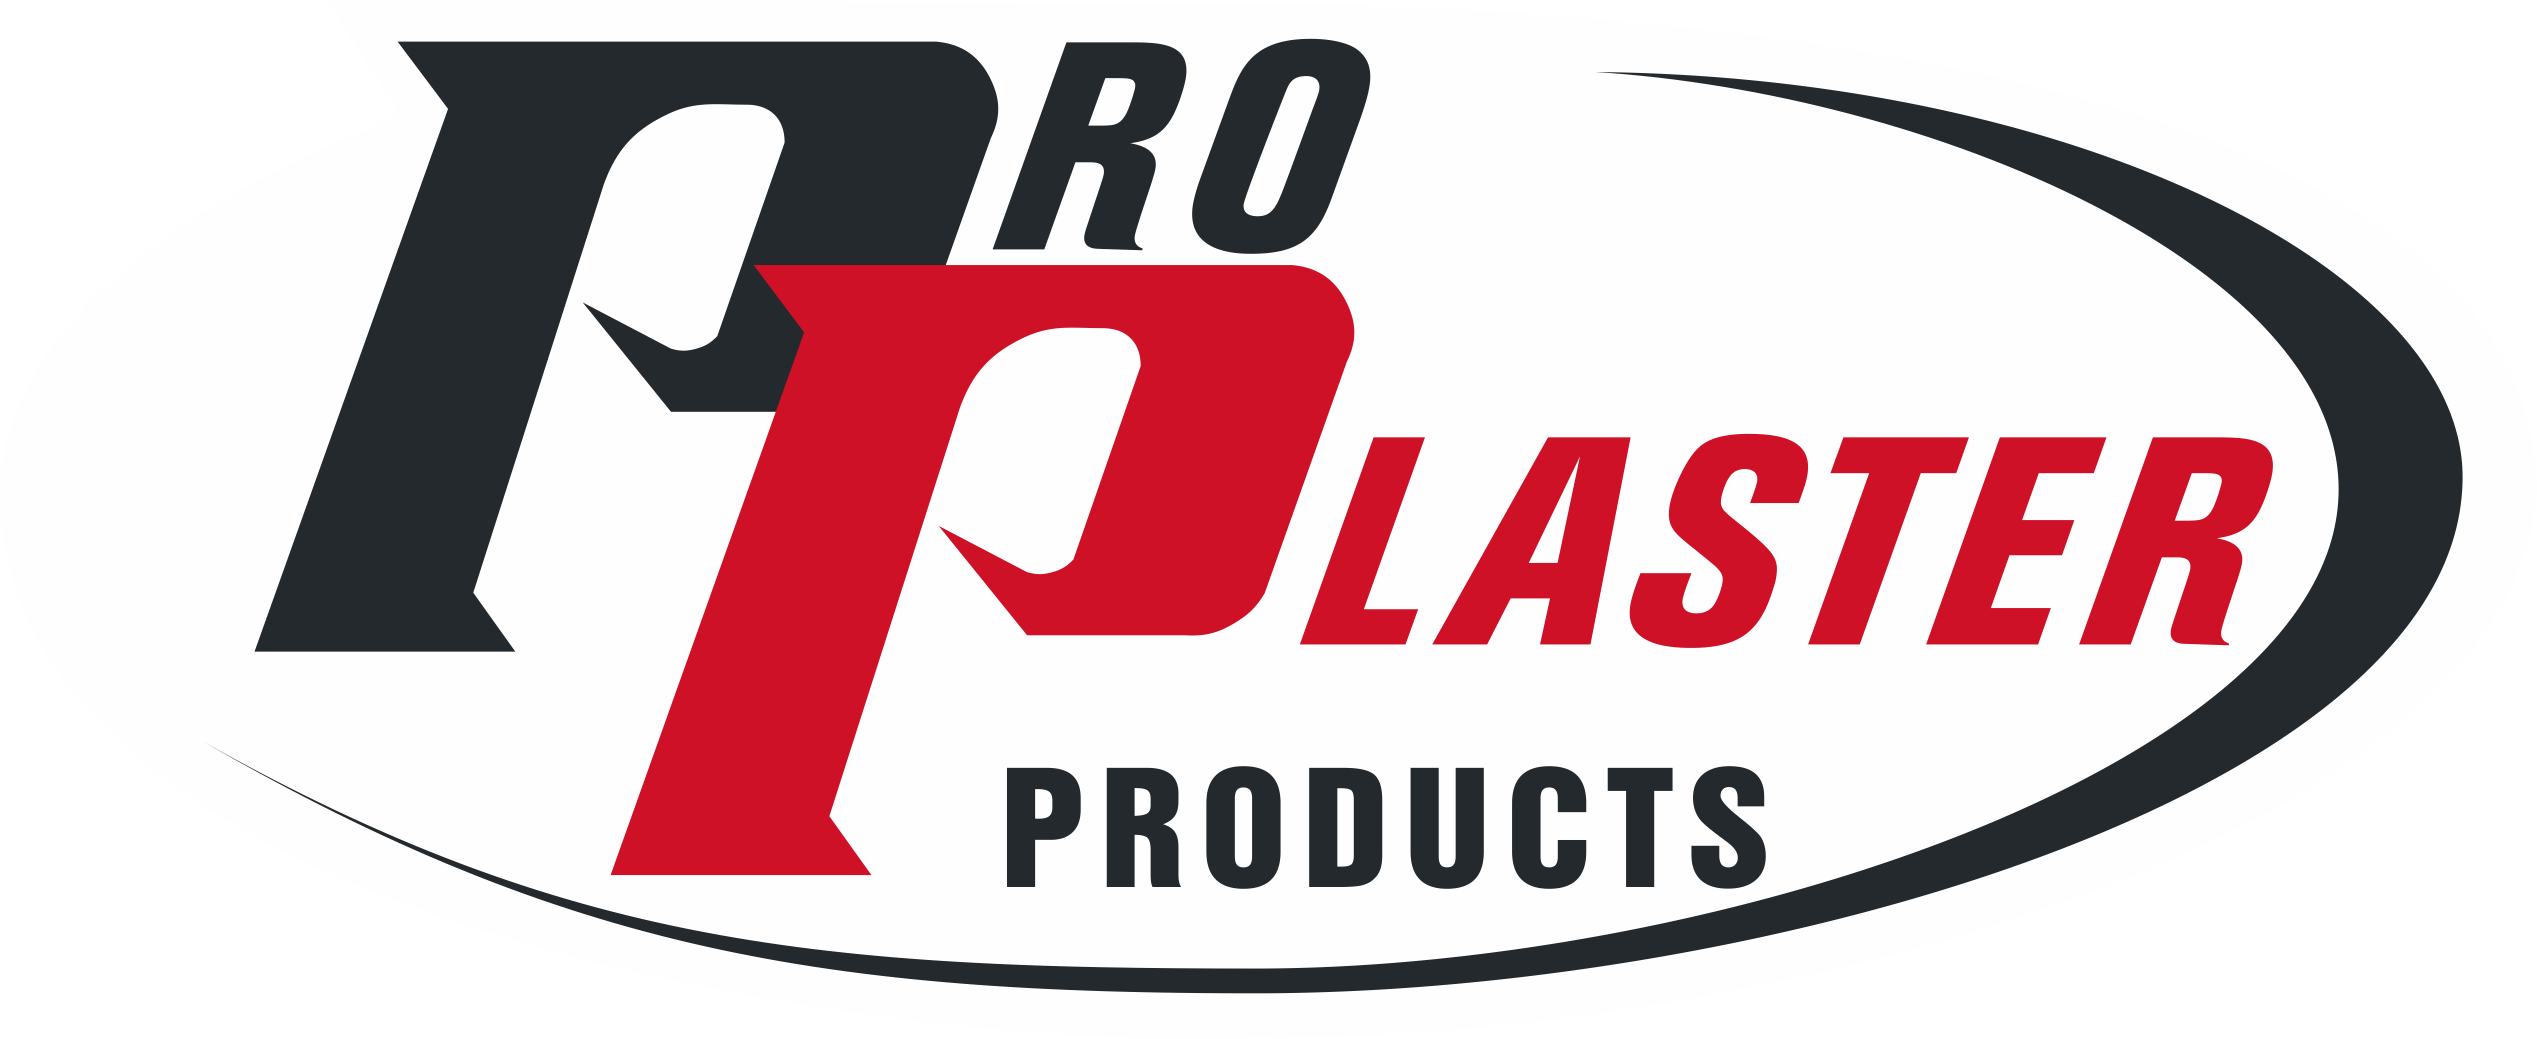 Pro Plaster Logo - Dark Background